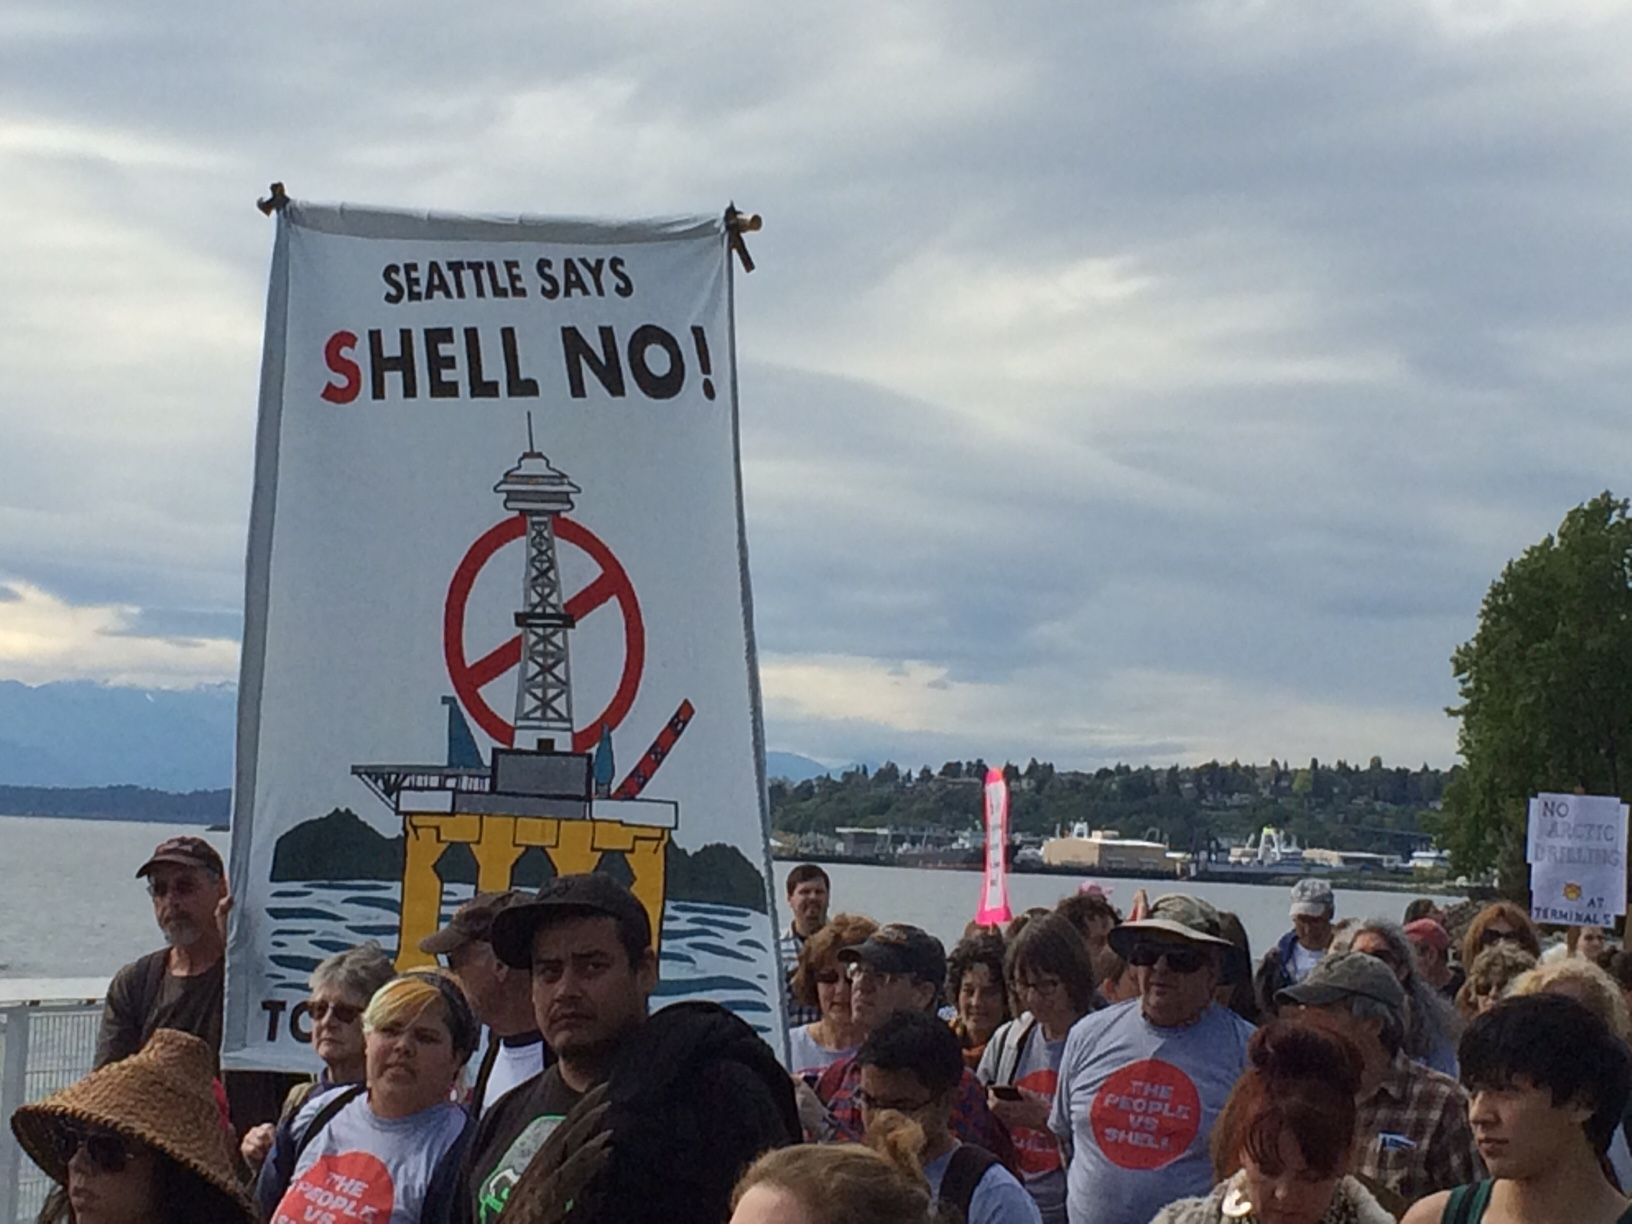 seattle_shell.jpg